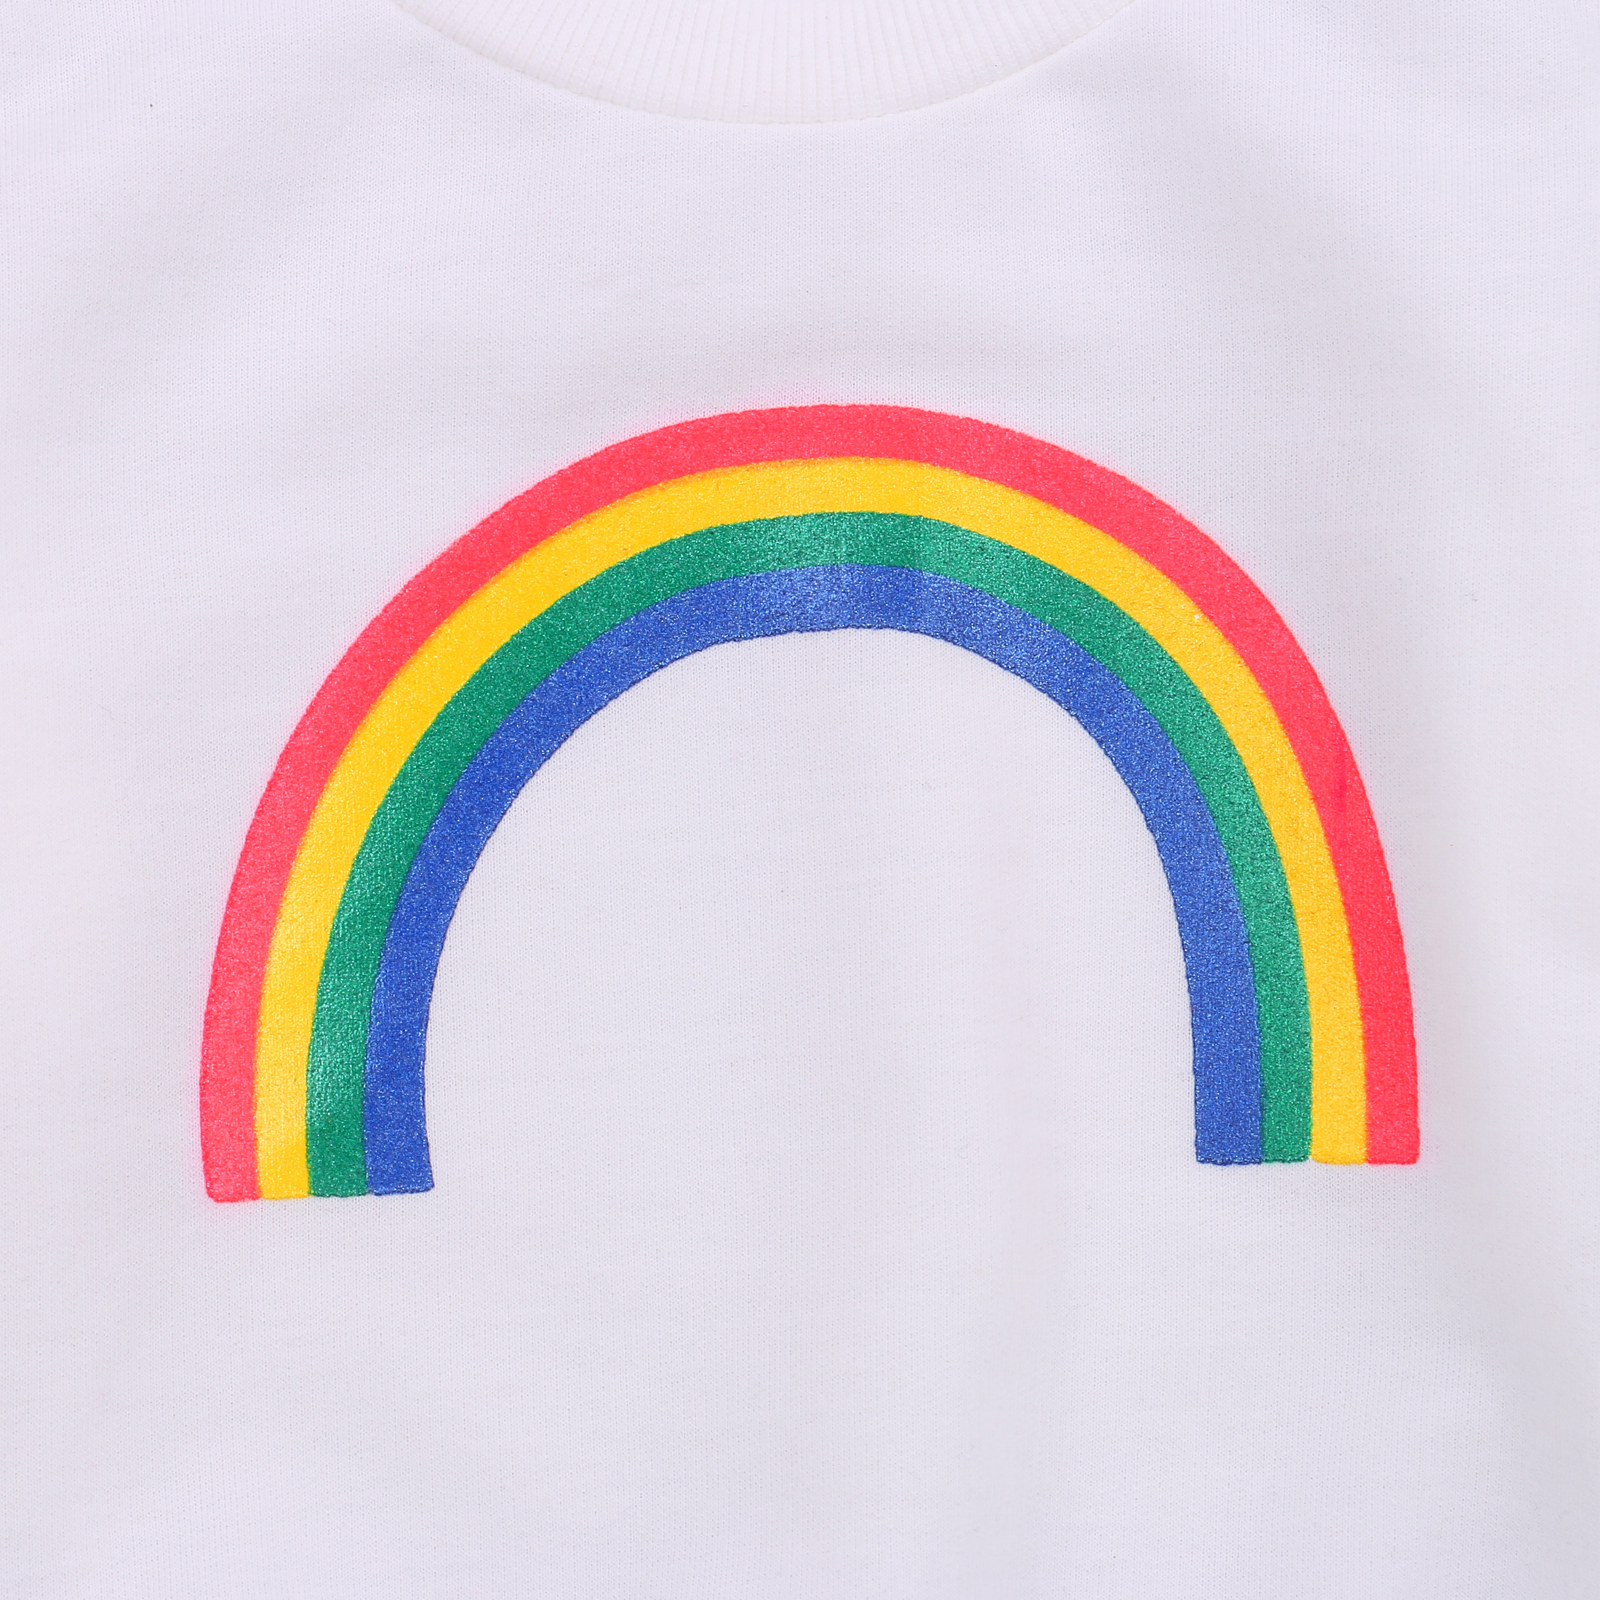 Pudcoco 2020 Autumn 0-3Y Toddler Baby Girl Boy Rainbow Pattern Print Long Sleeve Sweatshirt Infant Outfit Clothes White/Black 3